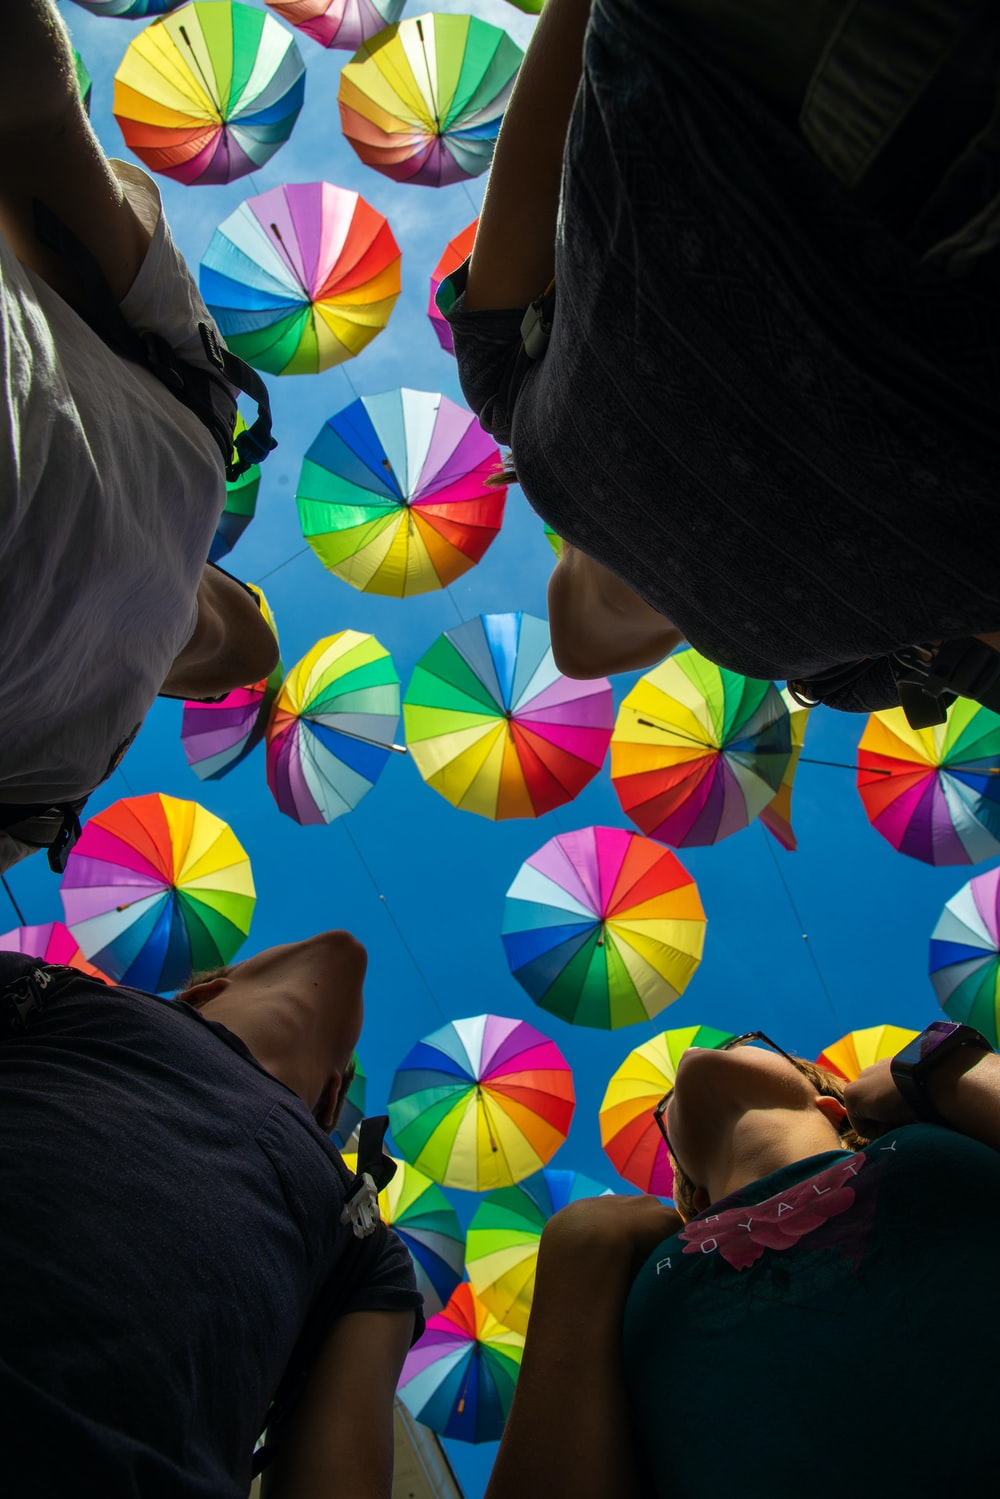 low-angle photo of people under colorful umbrellas